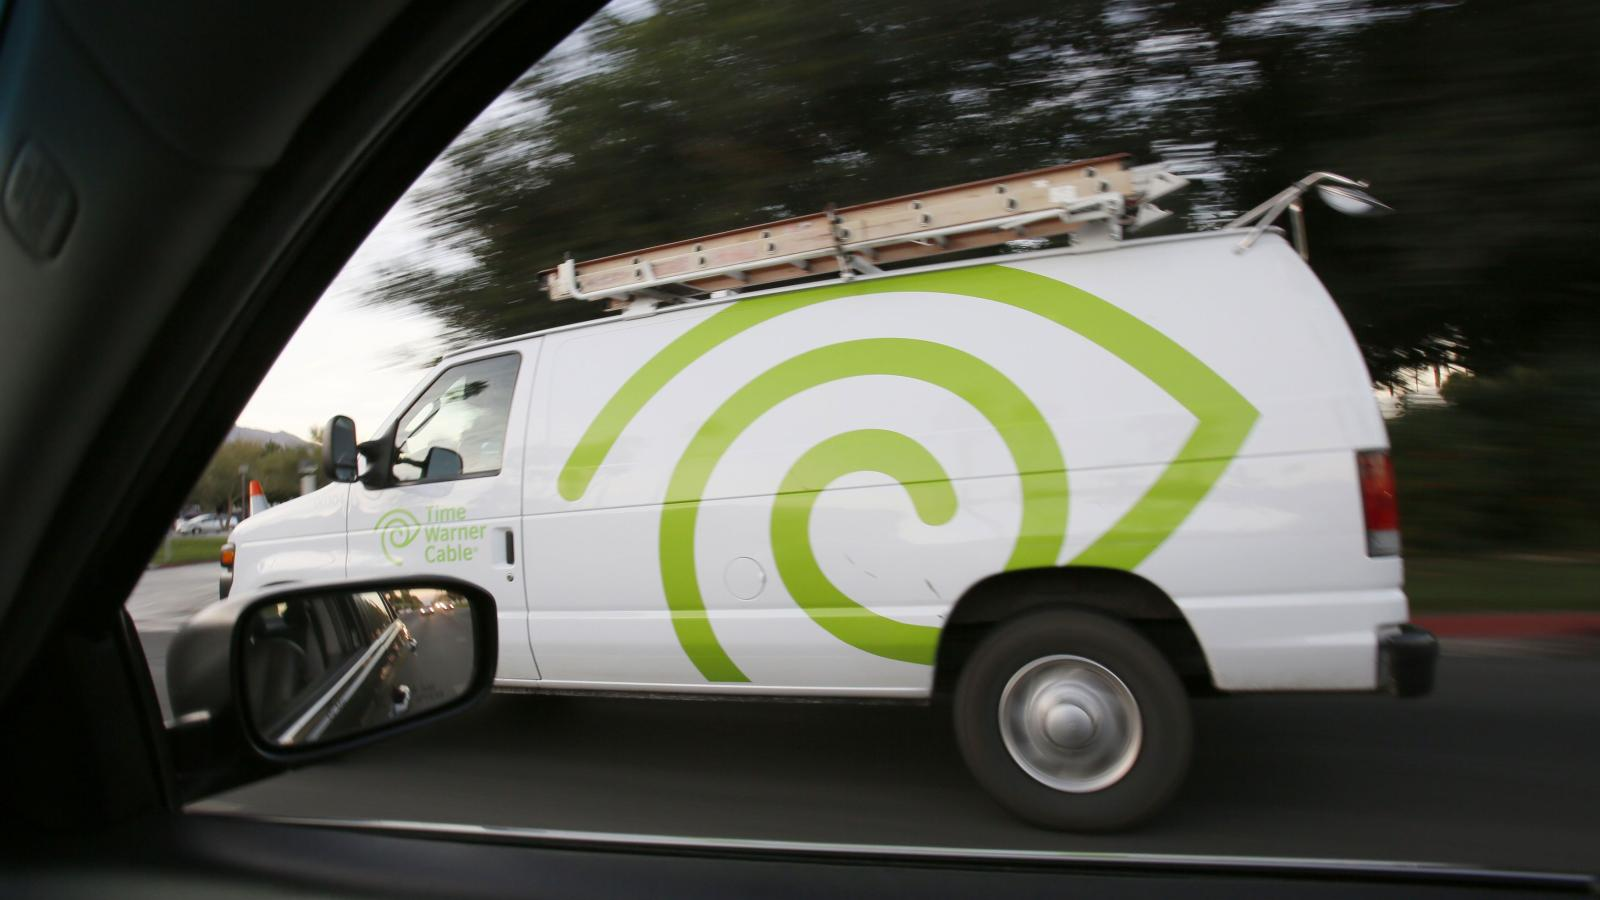 The Cable Guys Secrets Technician Claiming To Work For Time Warner Application 2 Home Networking Over Otherwise Unused Inhouse Coax Is Telling All On Reddit Quartz